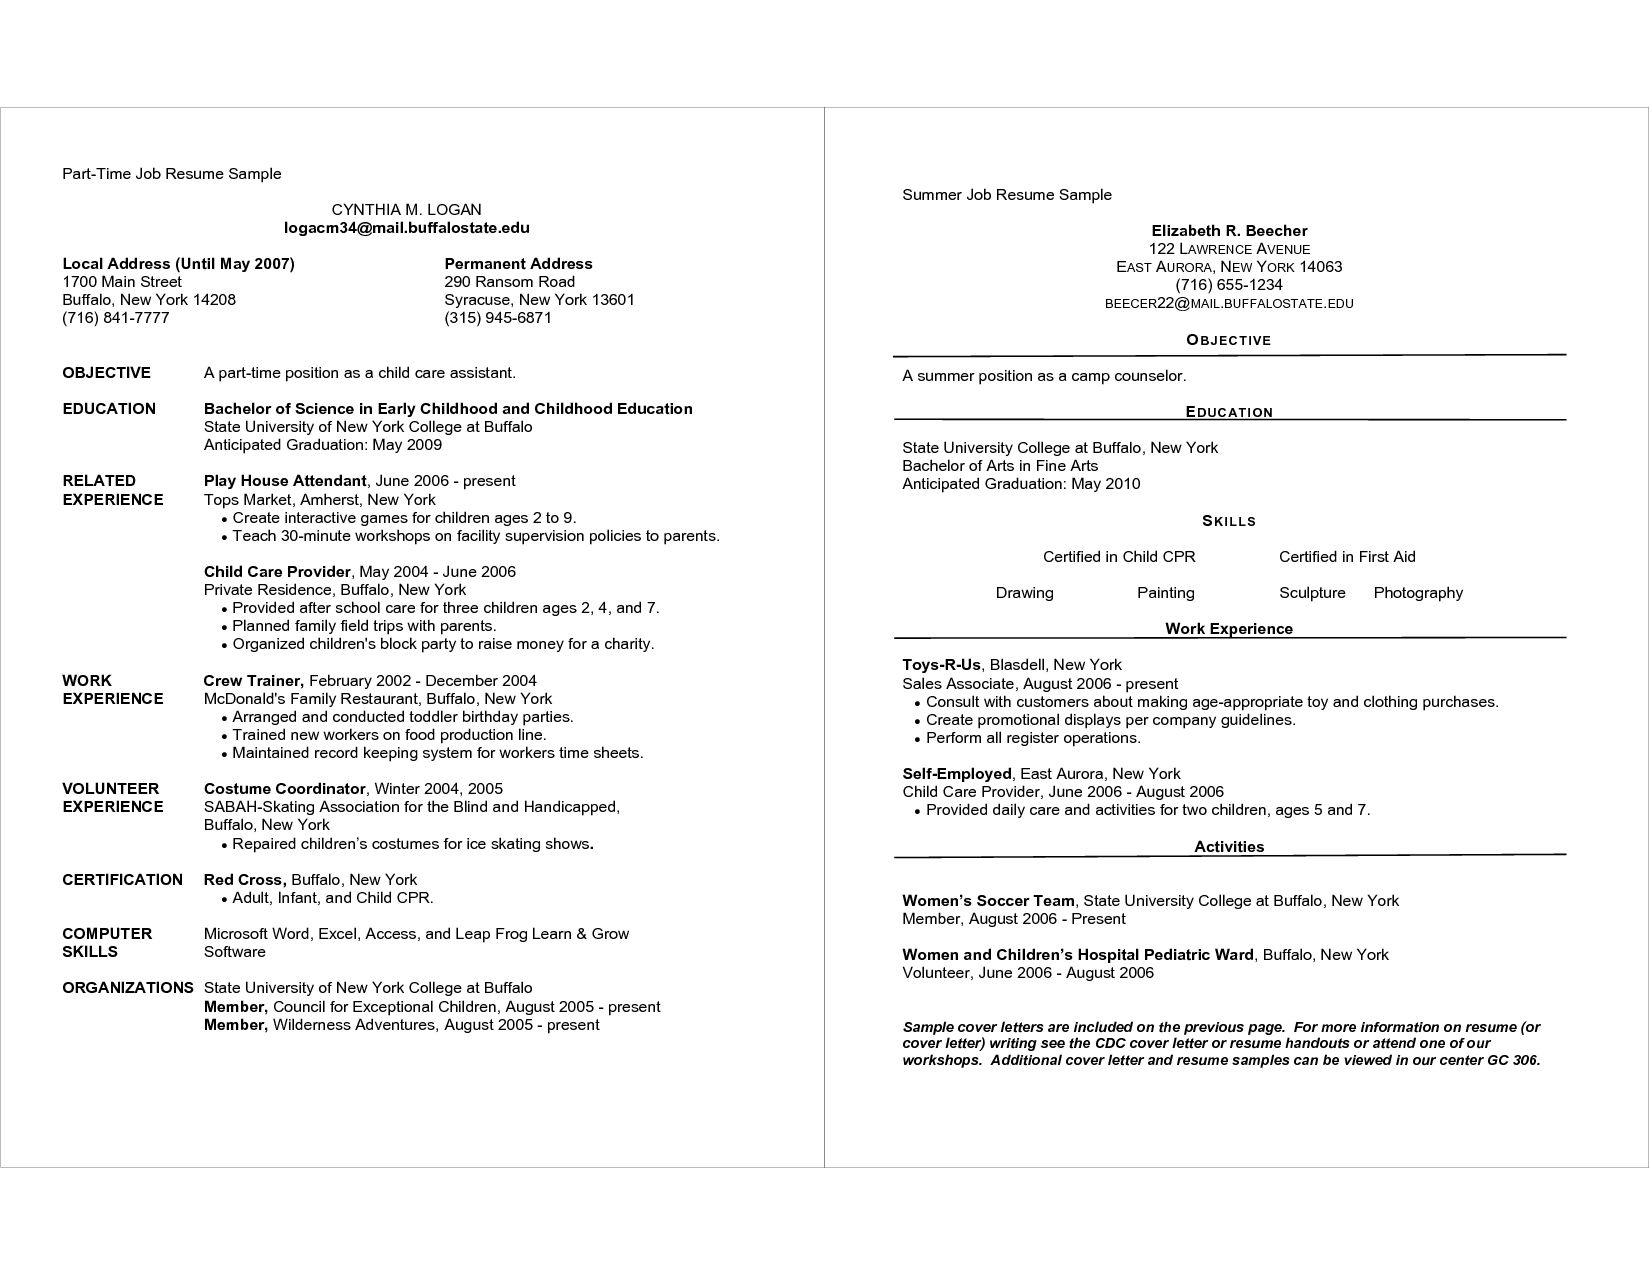 Traditional Resume Sample Private Sector Federal Usa Jobs Tips For